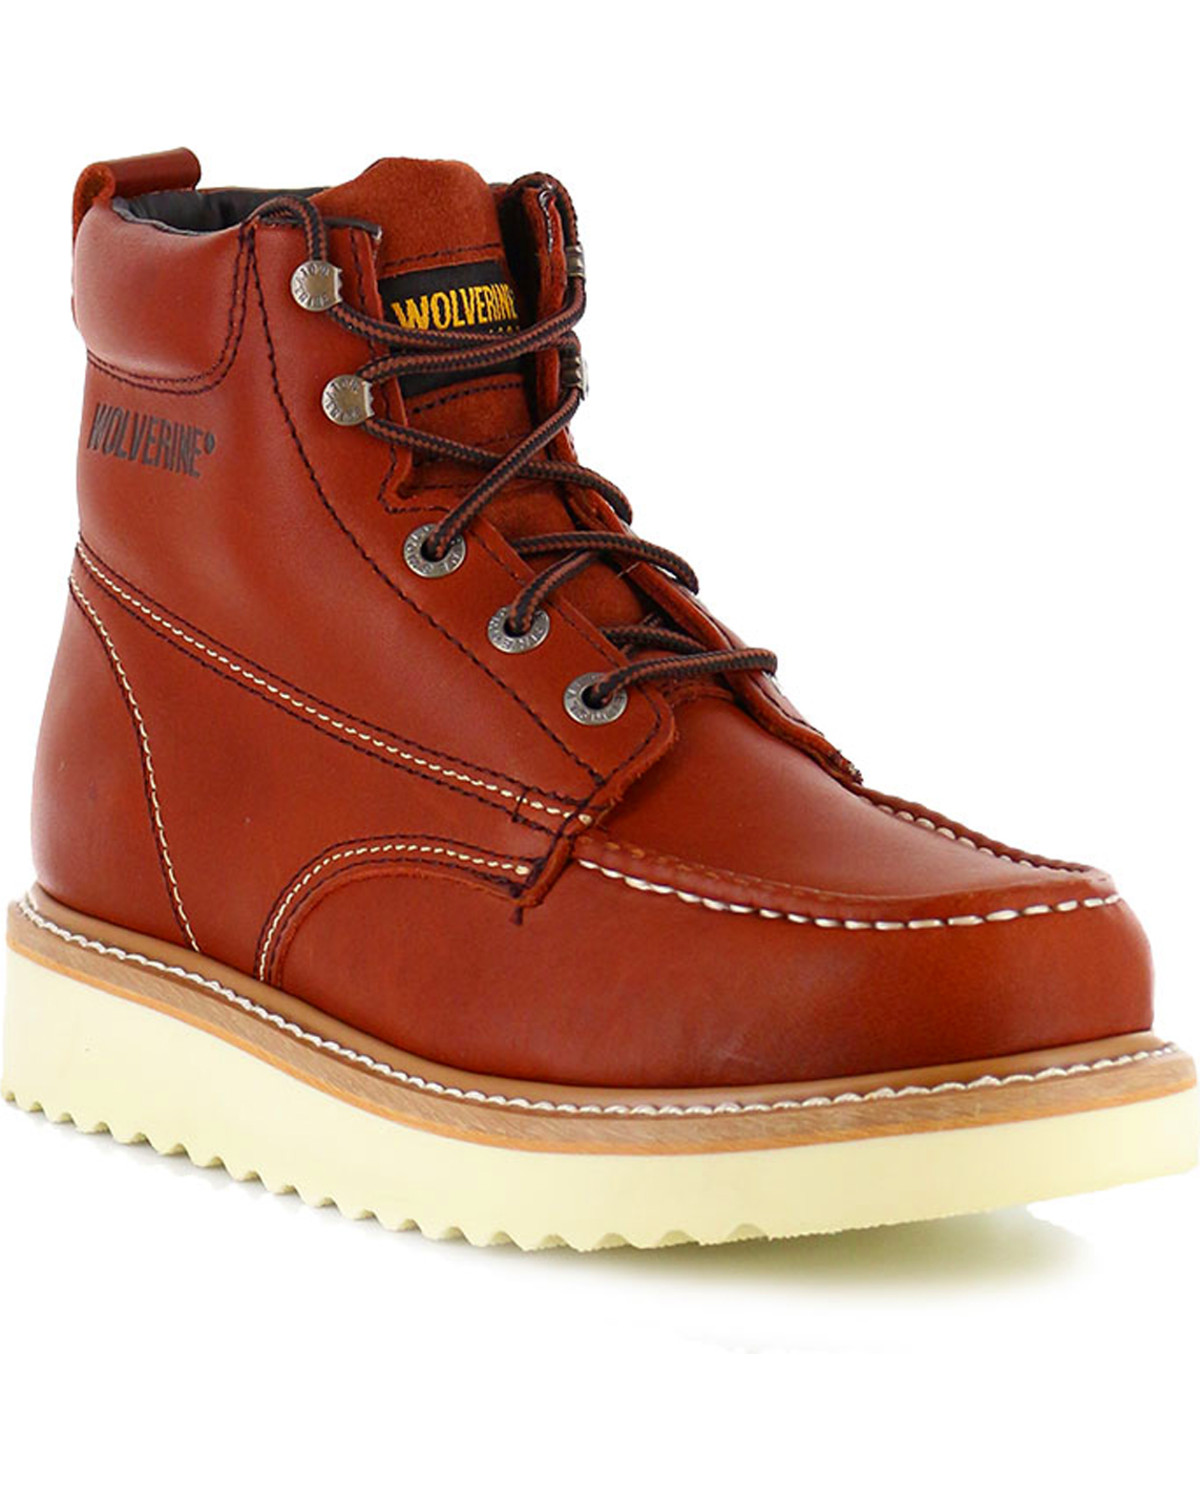 wolverine s moc toe work boots boot barn